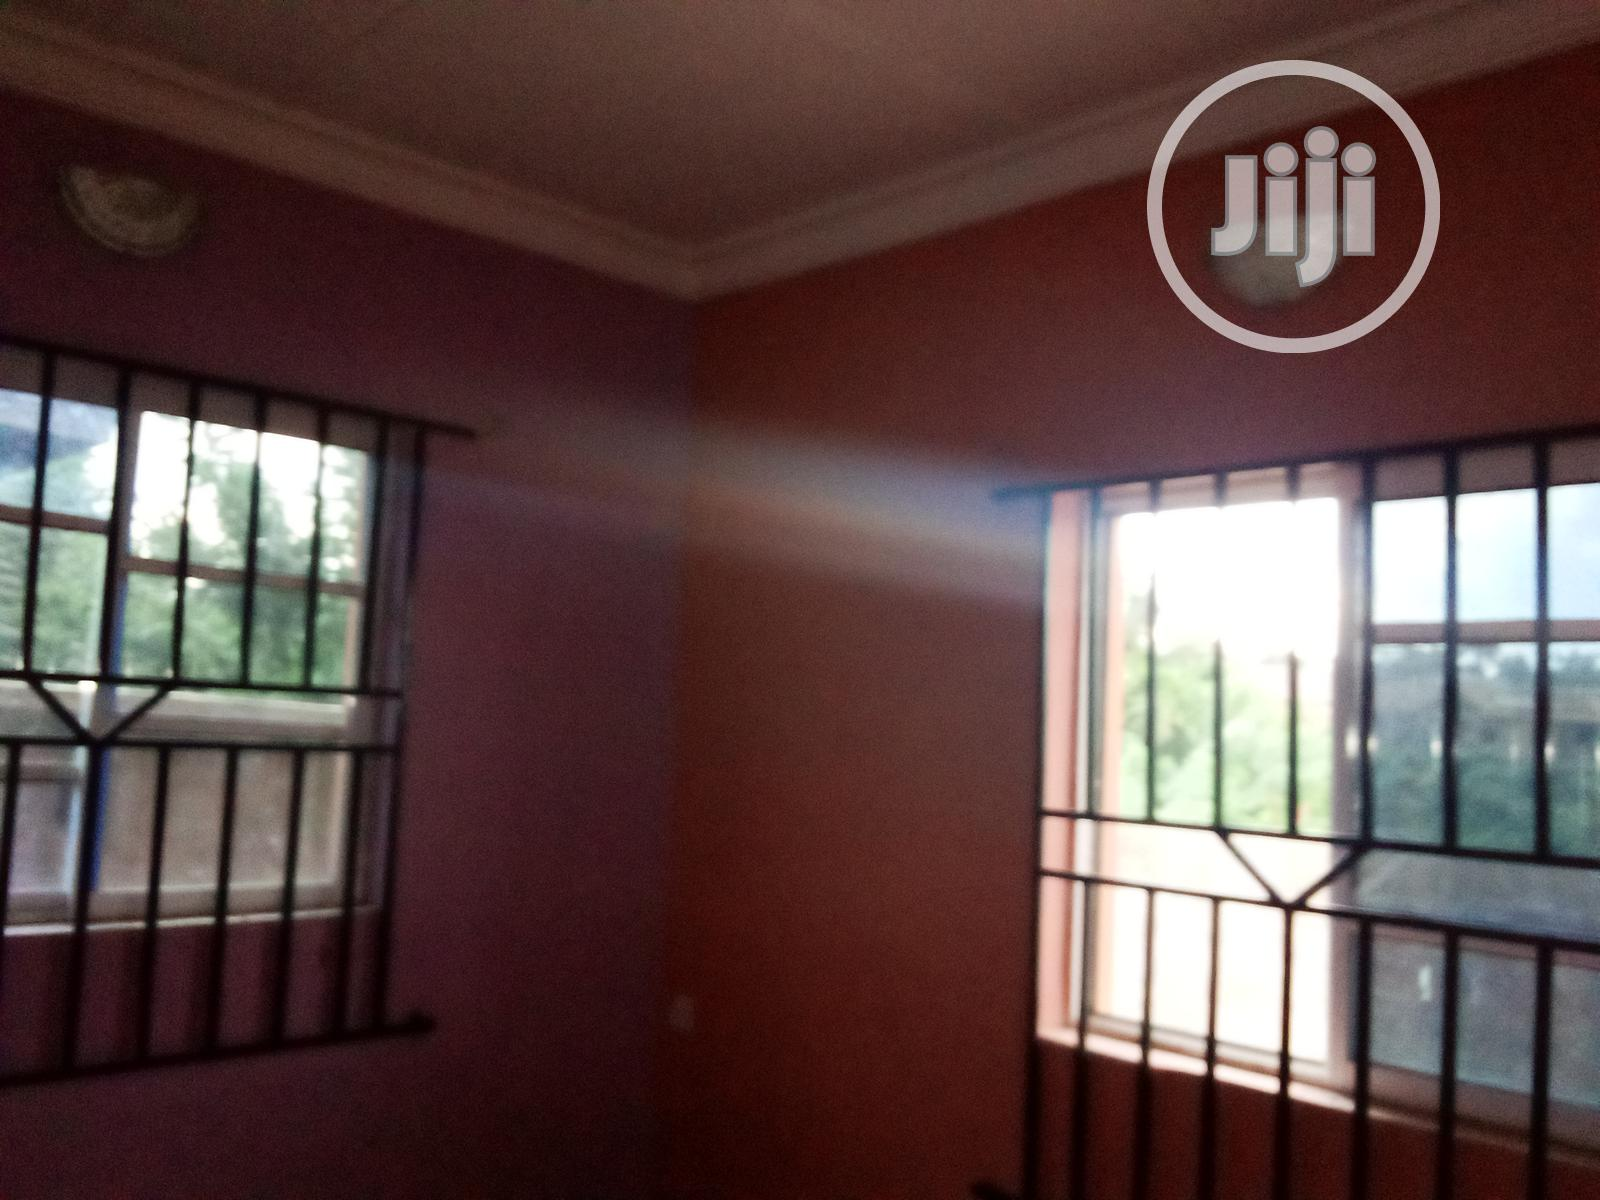 2 Bedrooms Bungalow for Rent Osogbo | Houses & Apartments For Rent for sale in Osogbo, Osun State, Nigeria